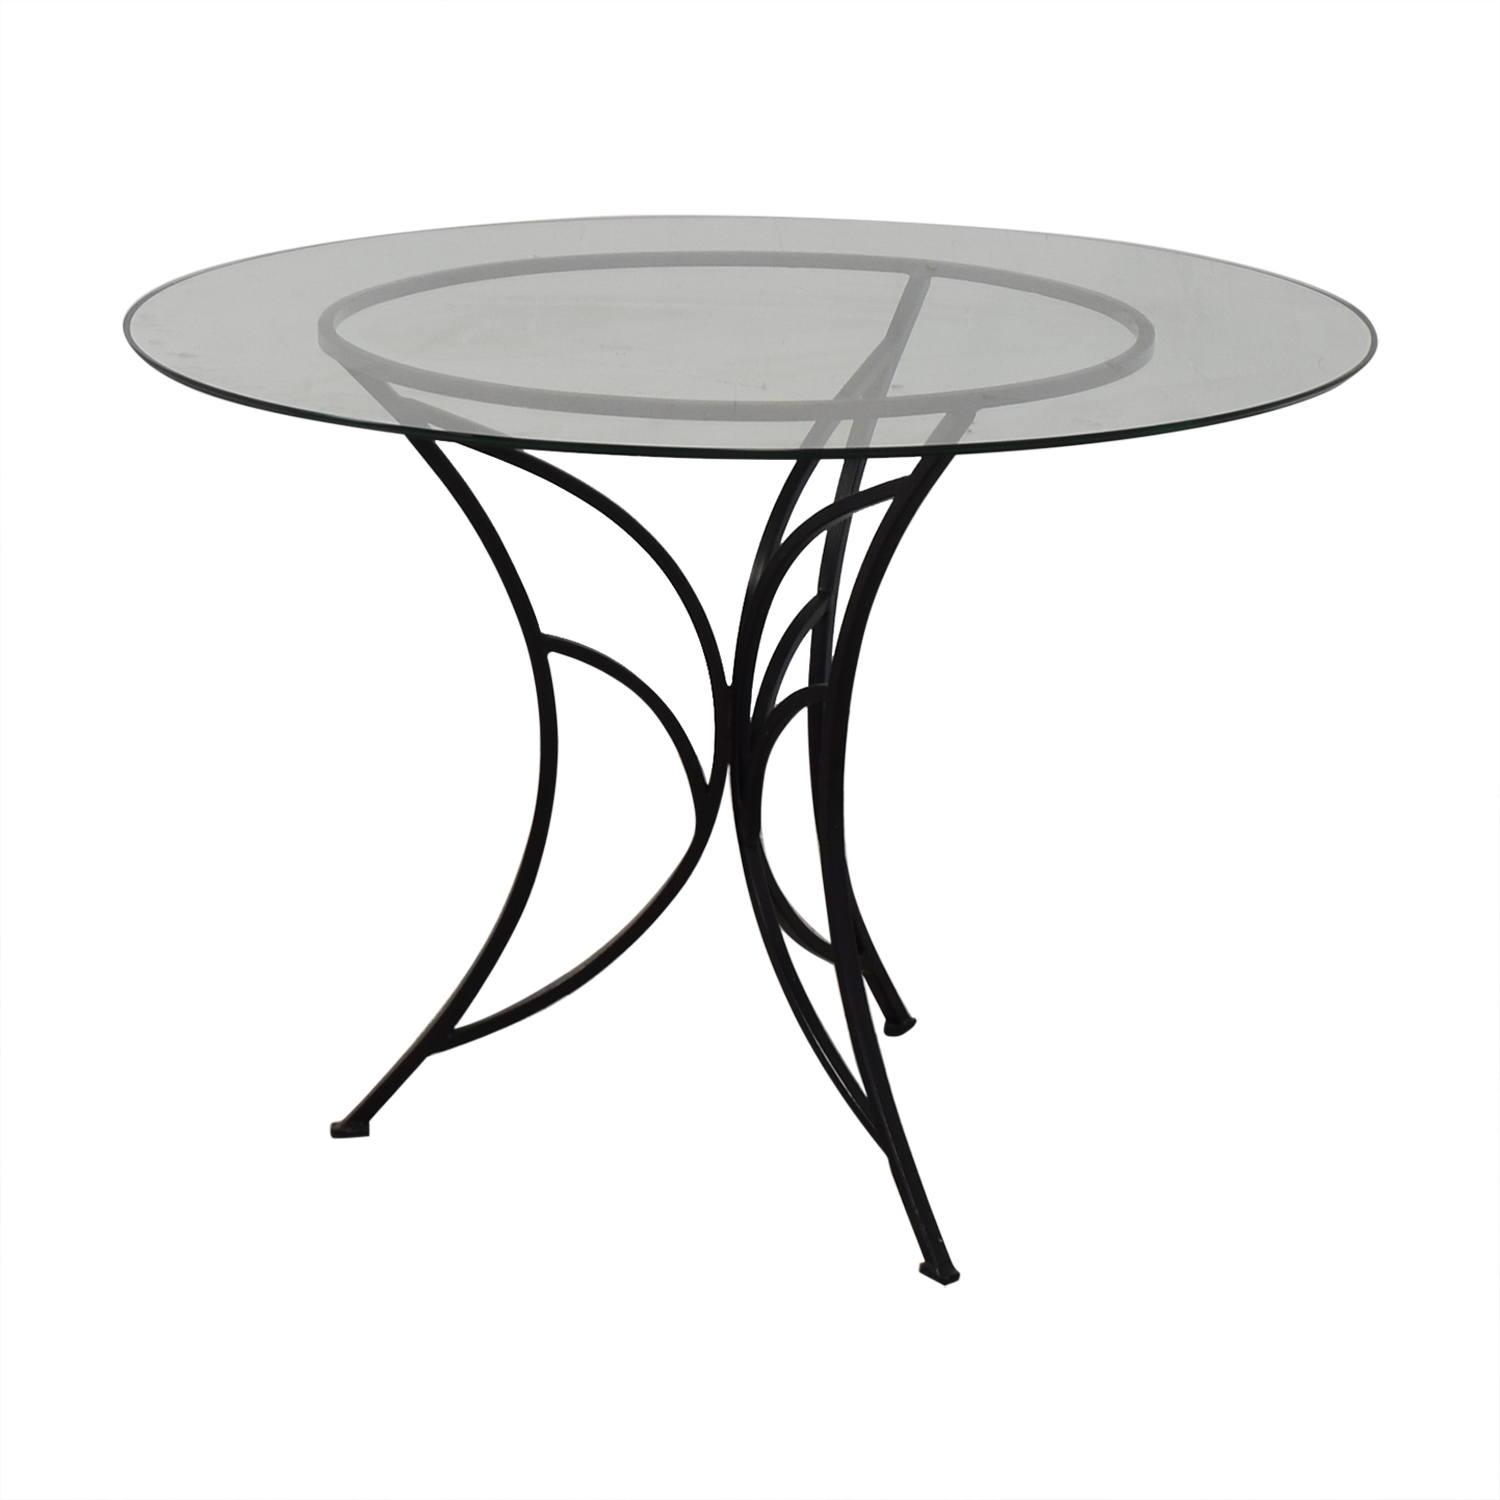 Pier 1 Pier One Glass Top Dining Table